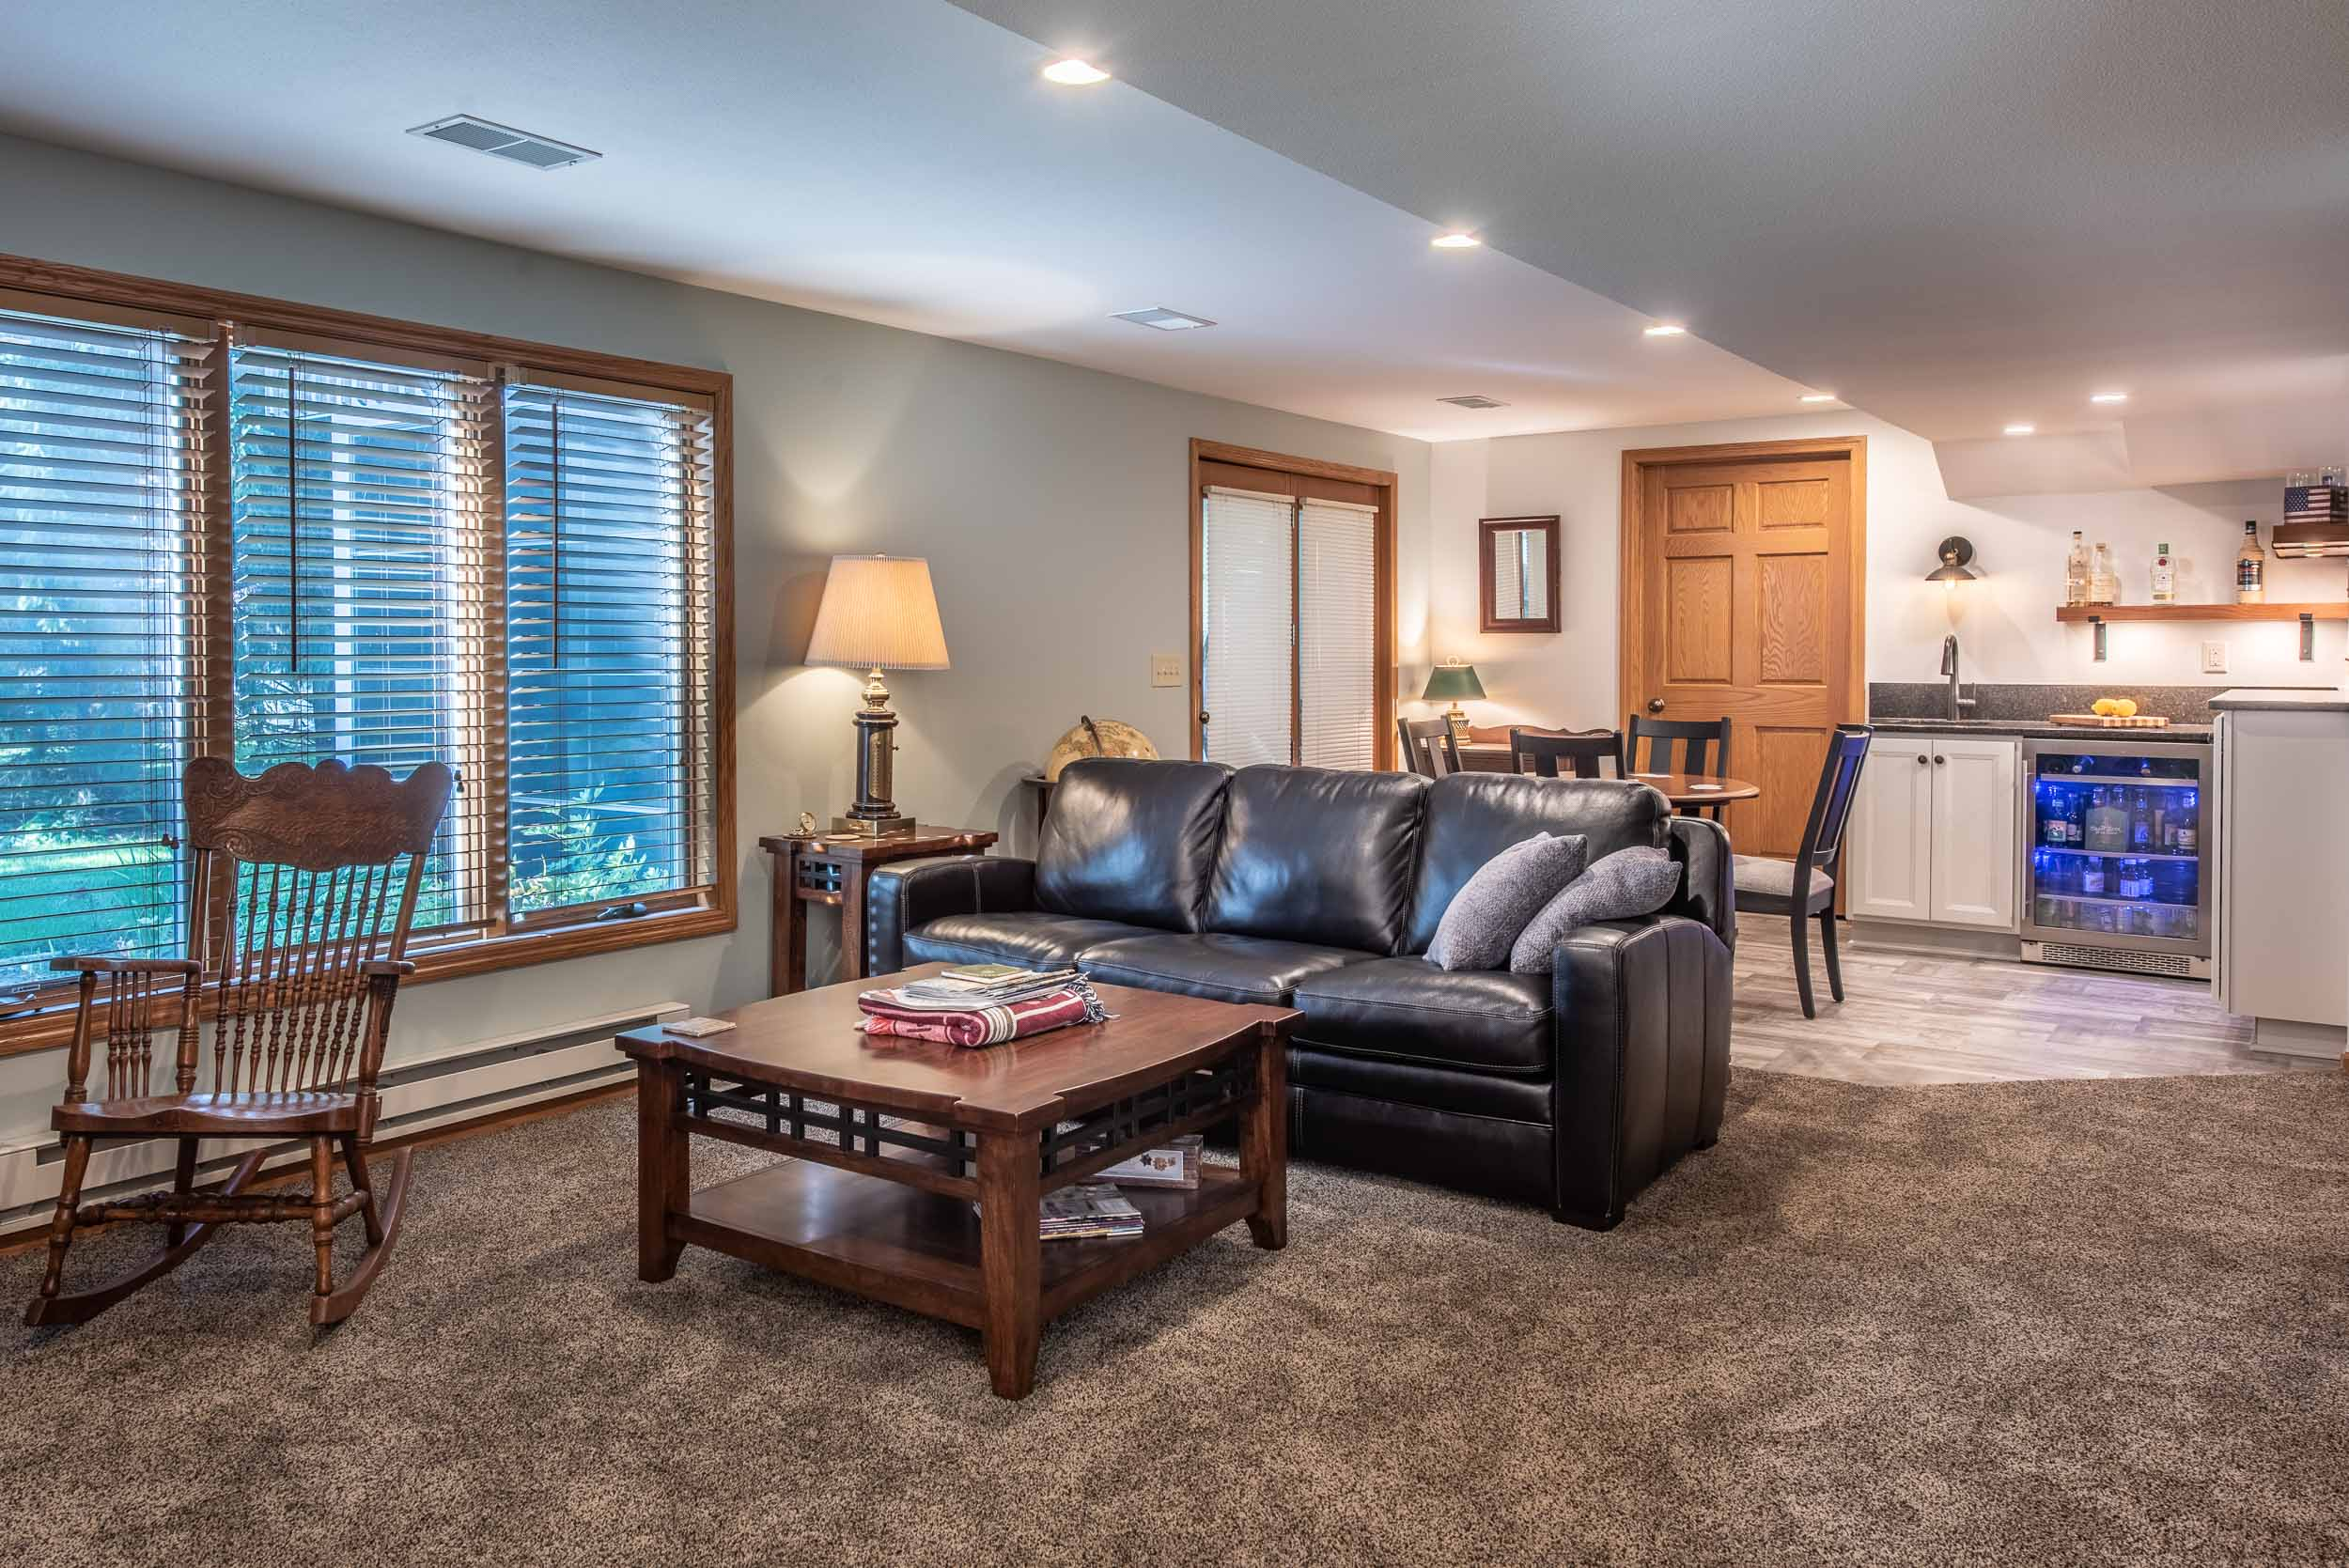 Whole House Remodel With Finished Basement In Sun Prairie, Wisconsin